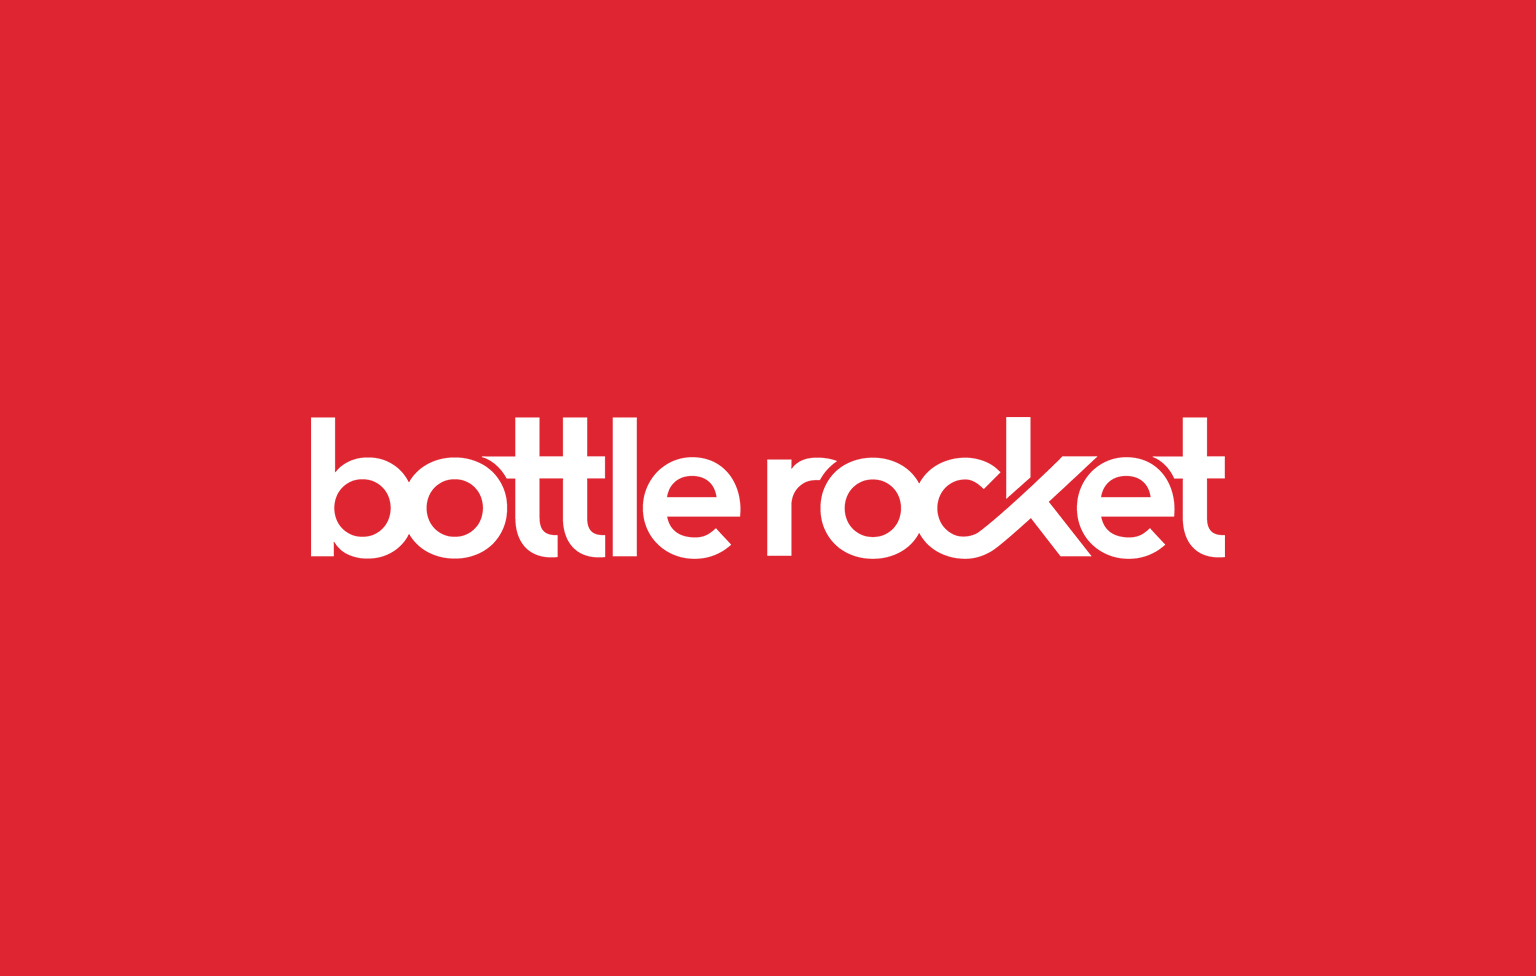 Bottle Rocket Recognizes Nine Key Leaders Who Are Making a Difference